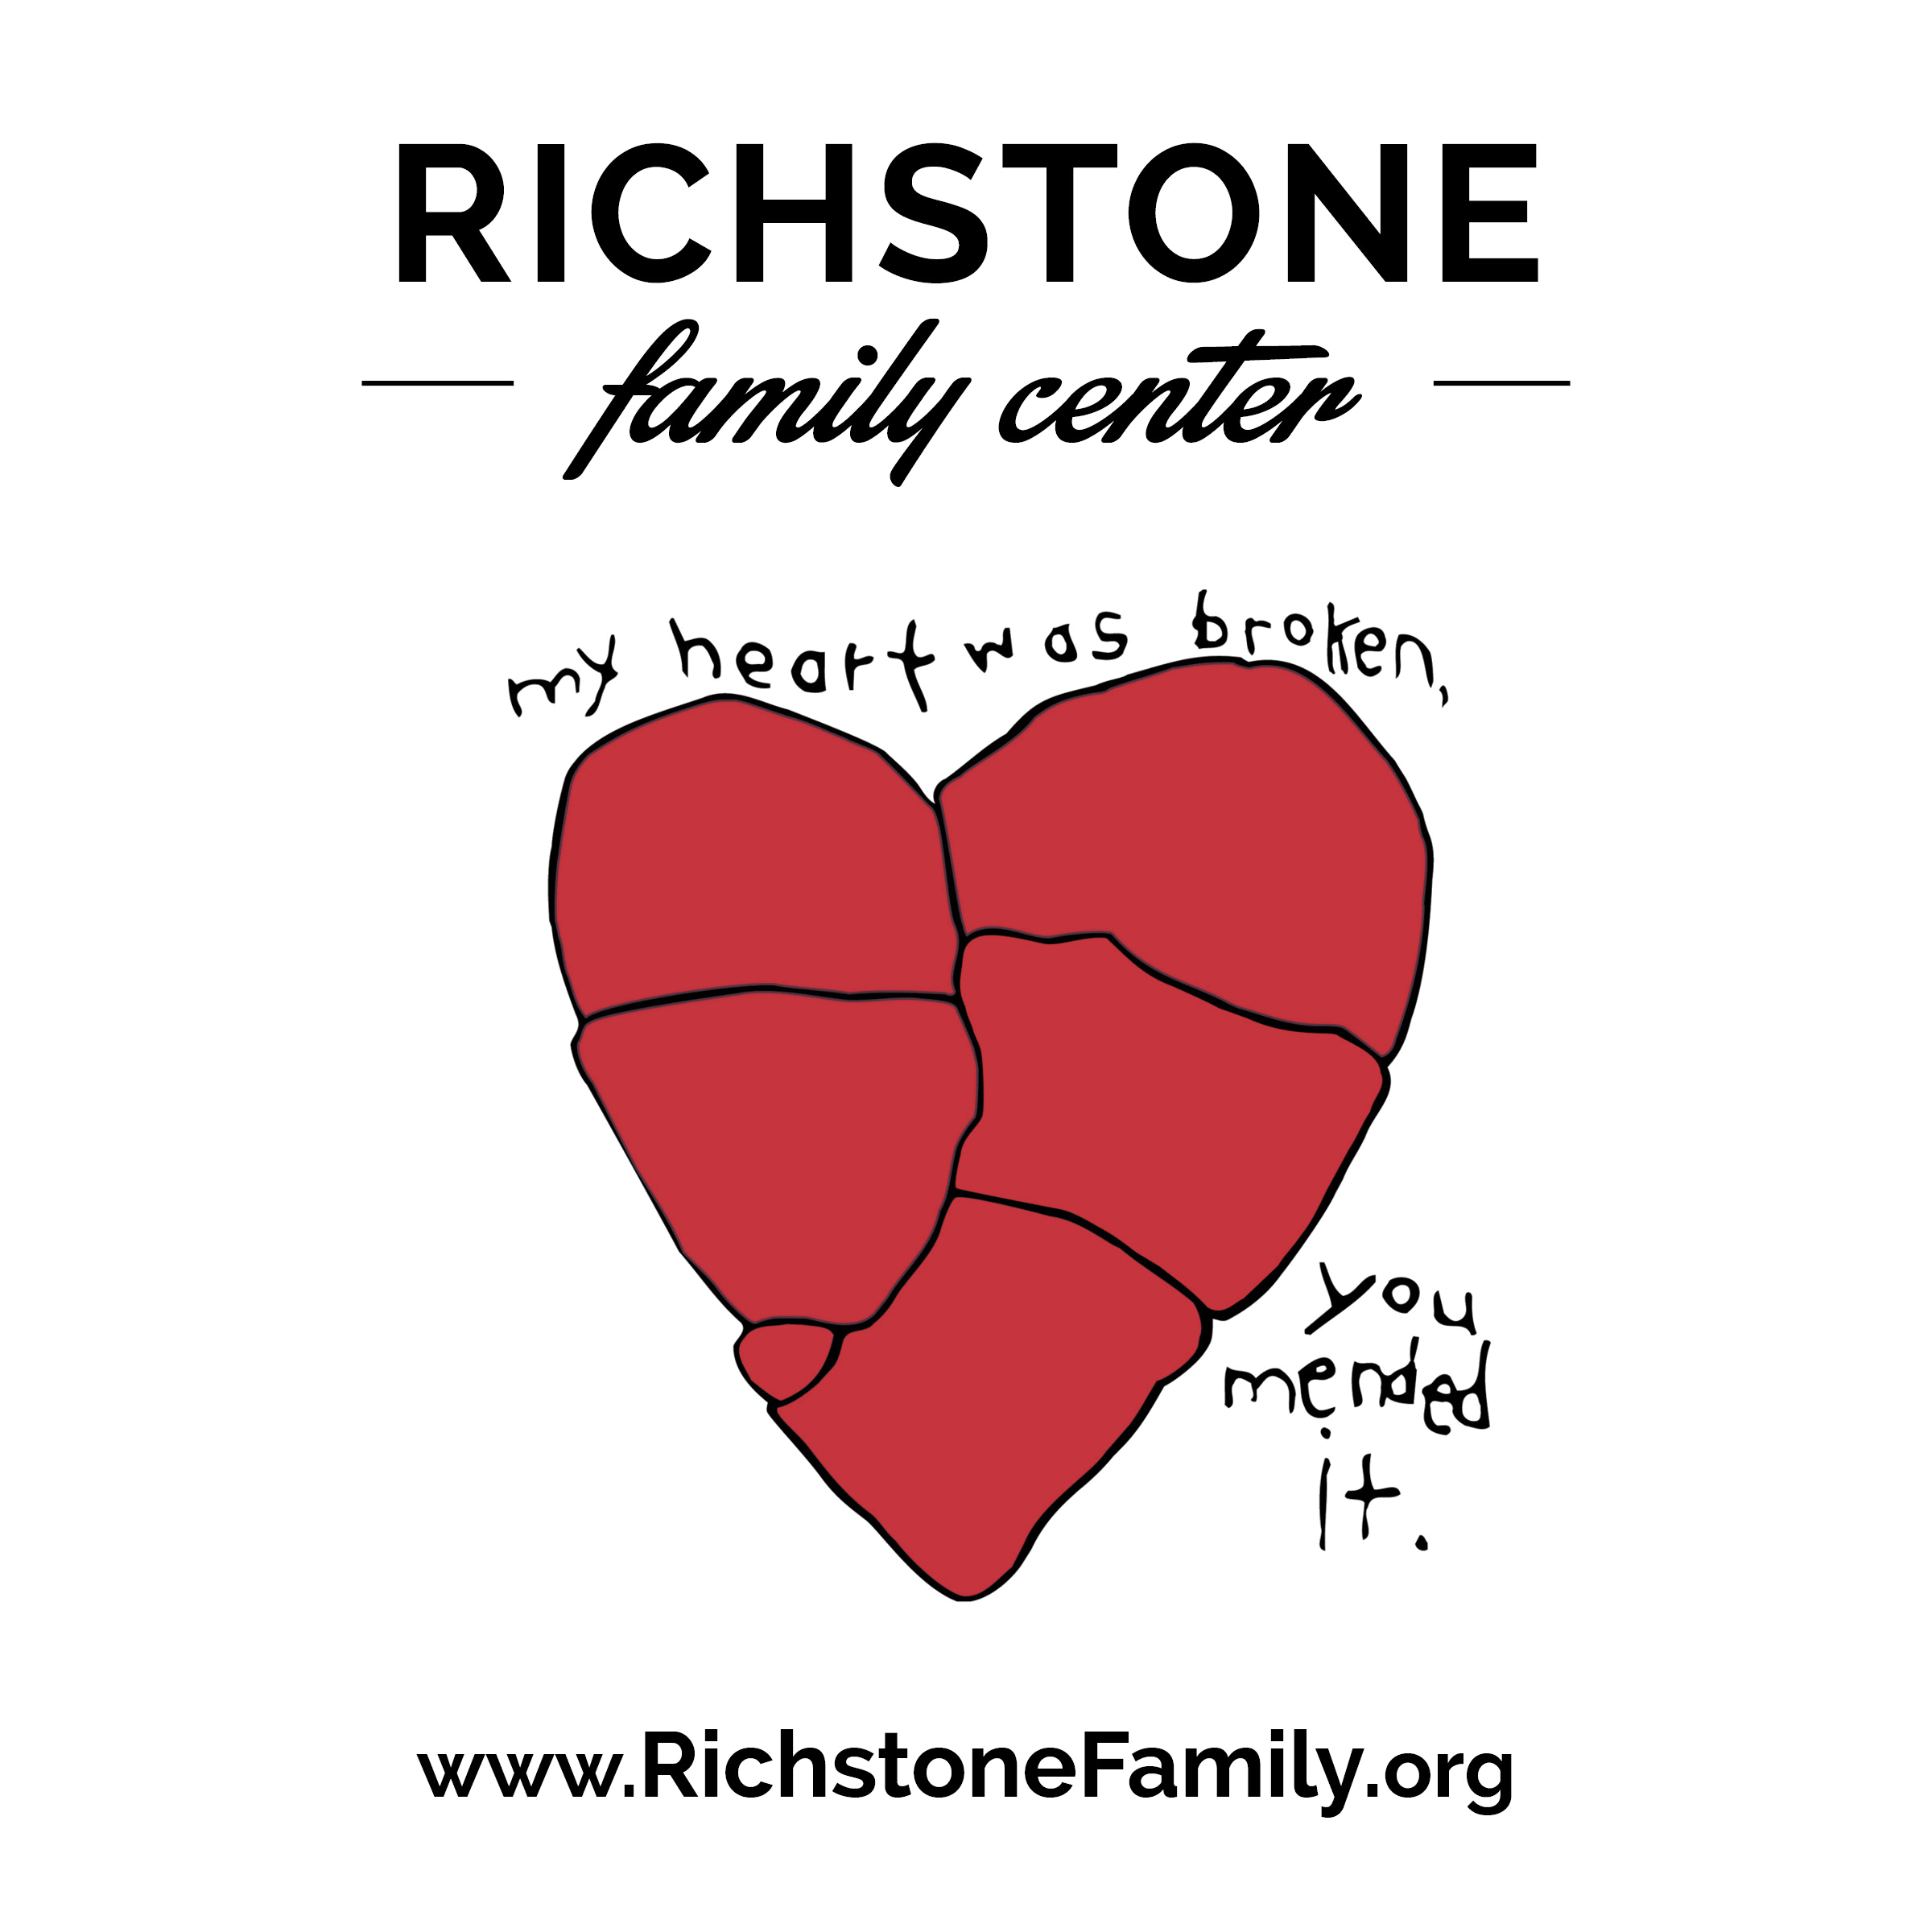 Richstone Family Center Juvenile Justice Panel